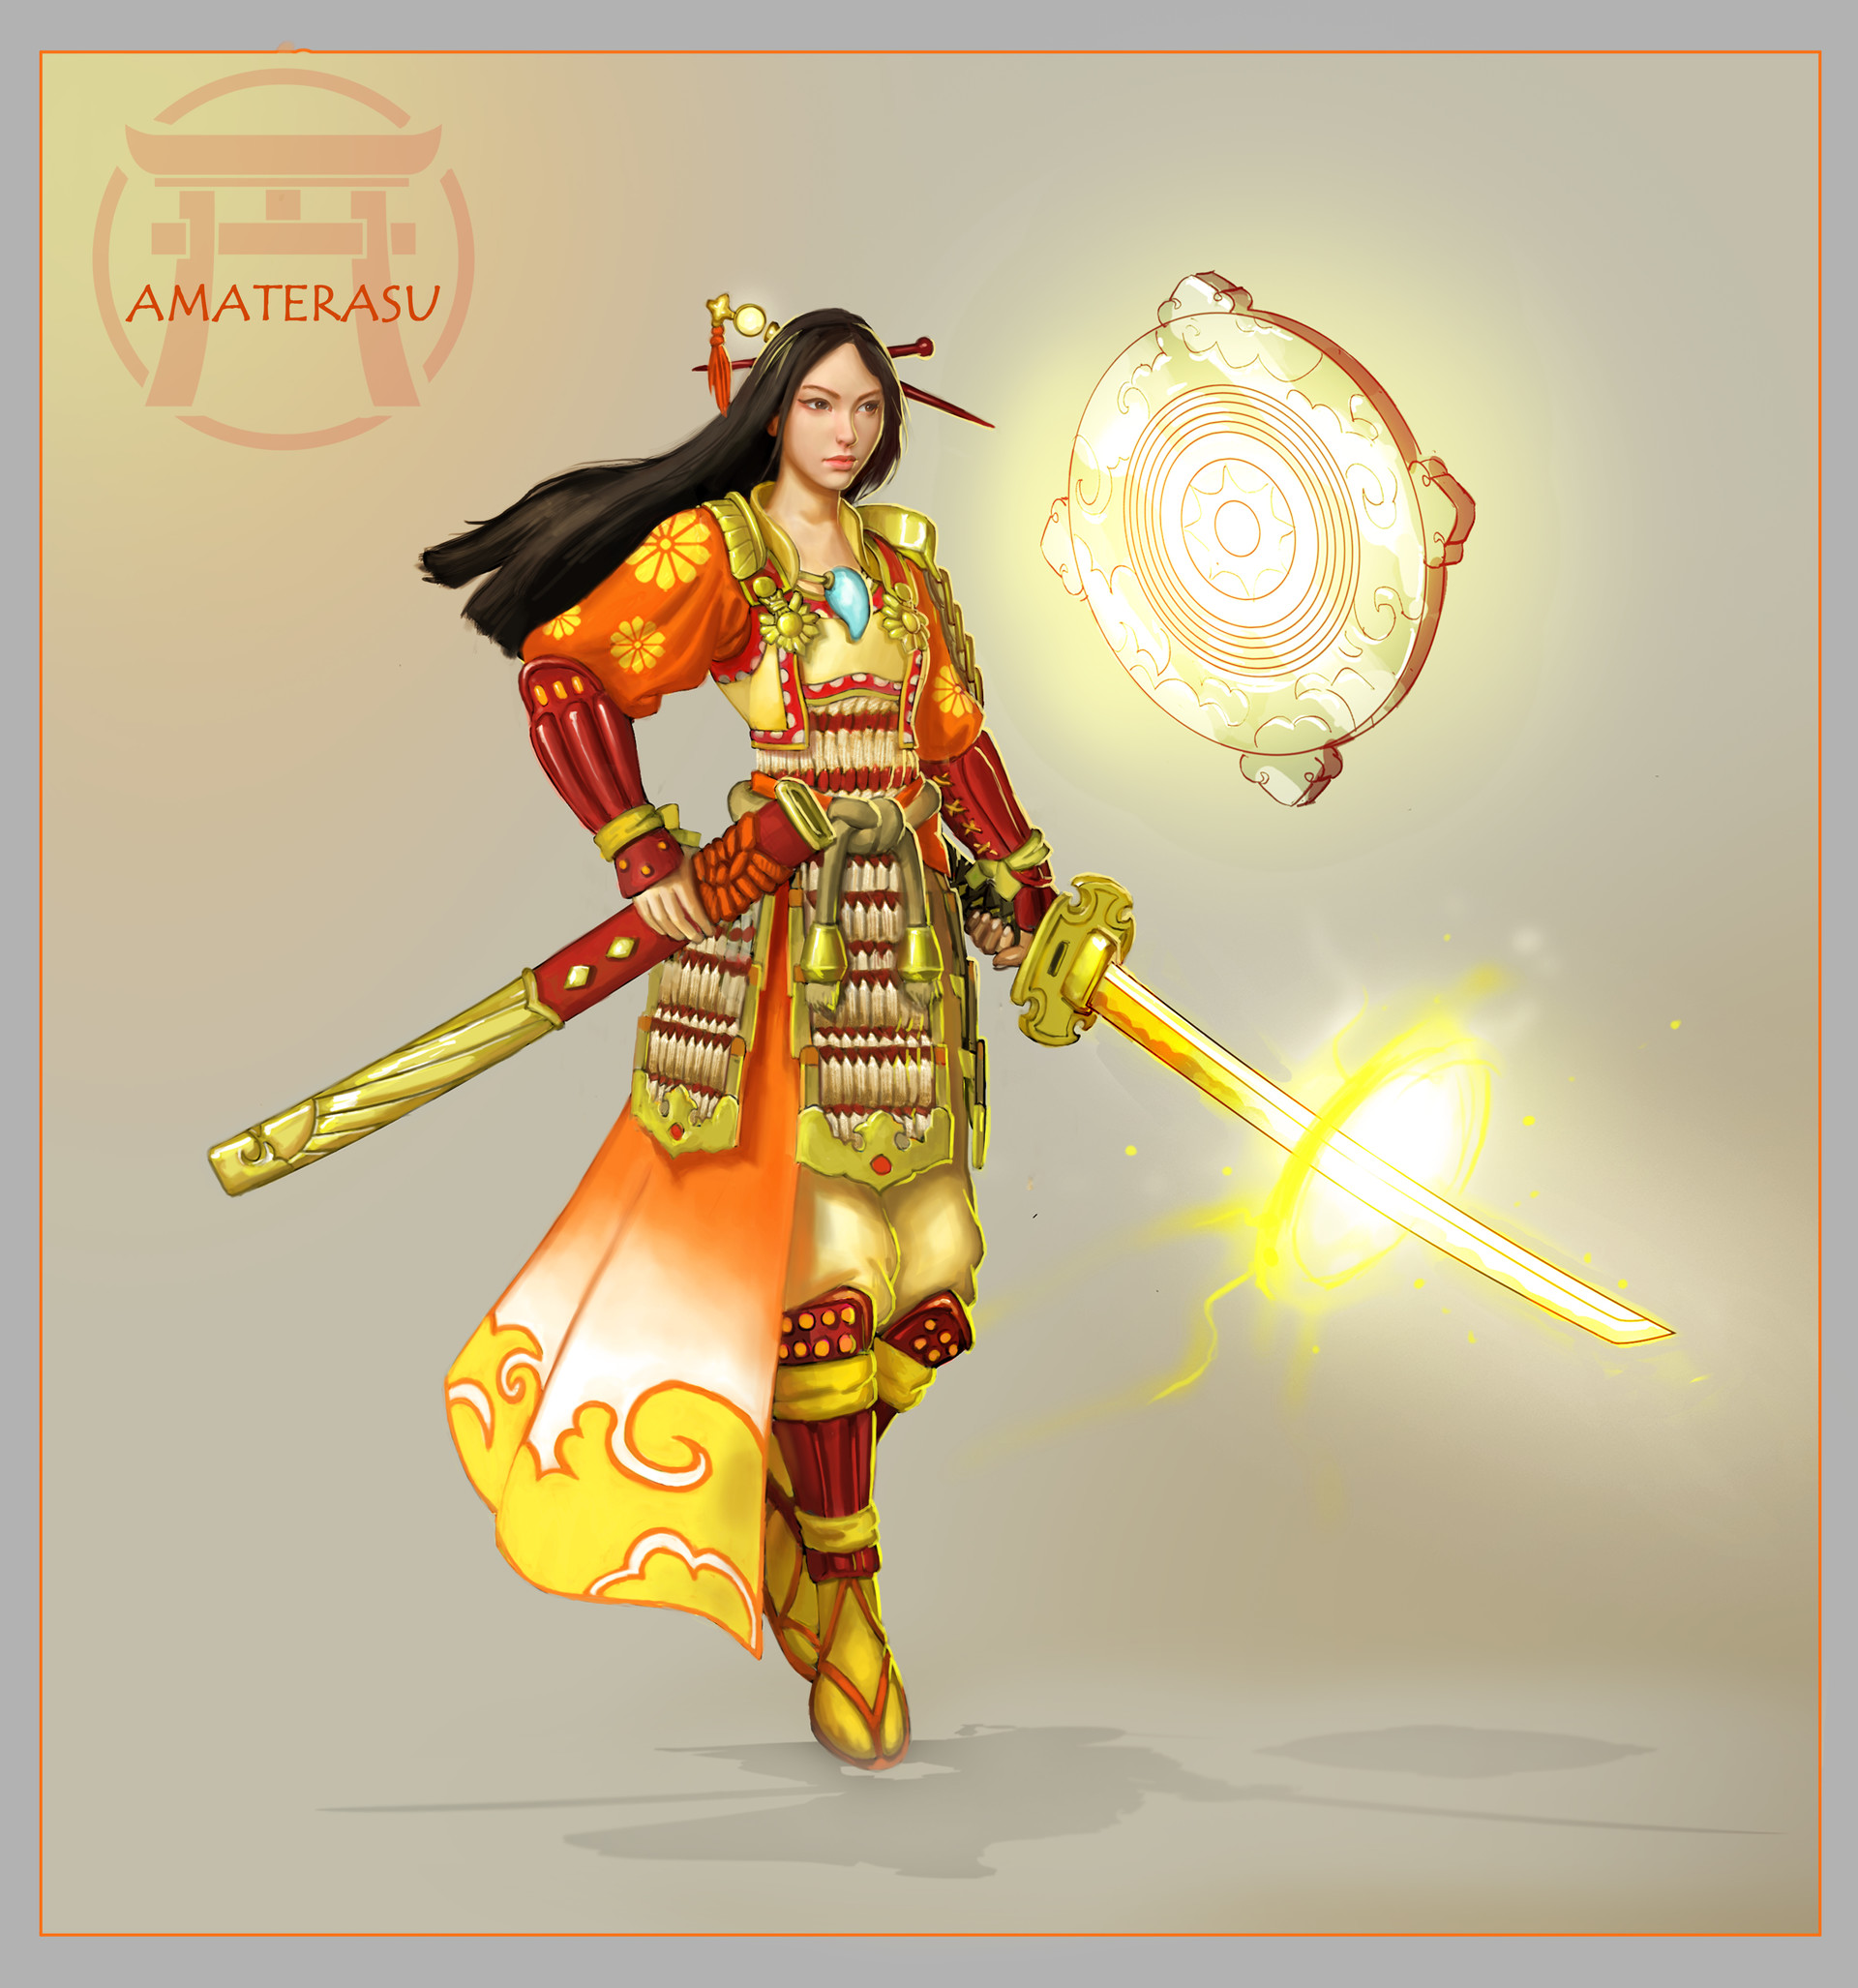 John bridges amaterasu concept